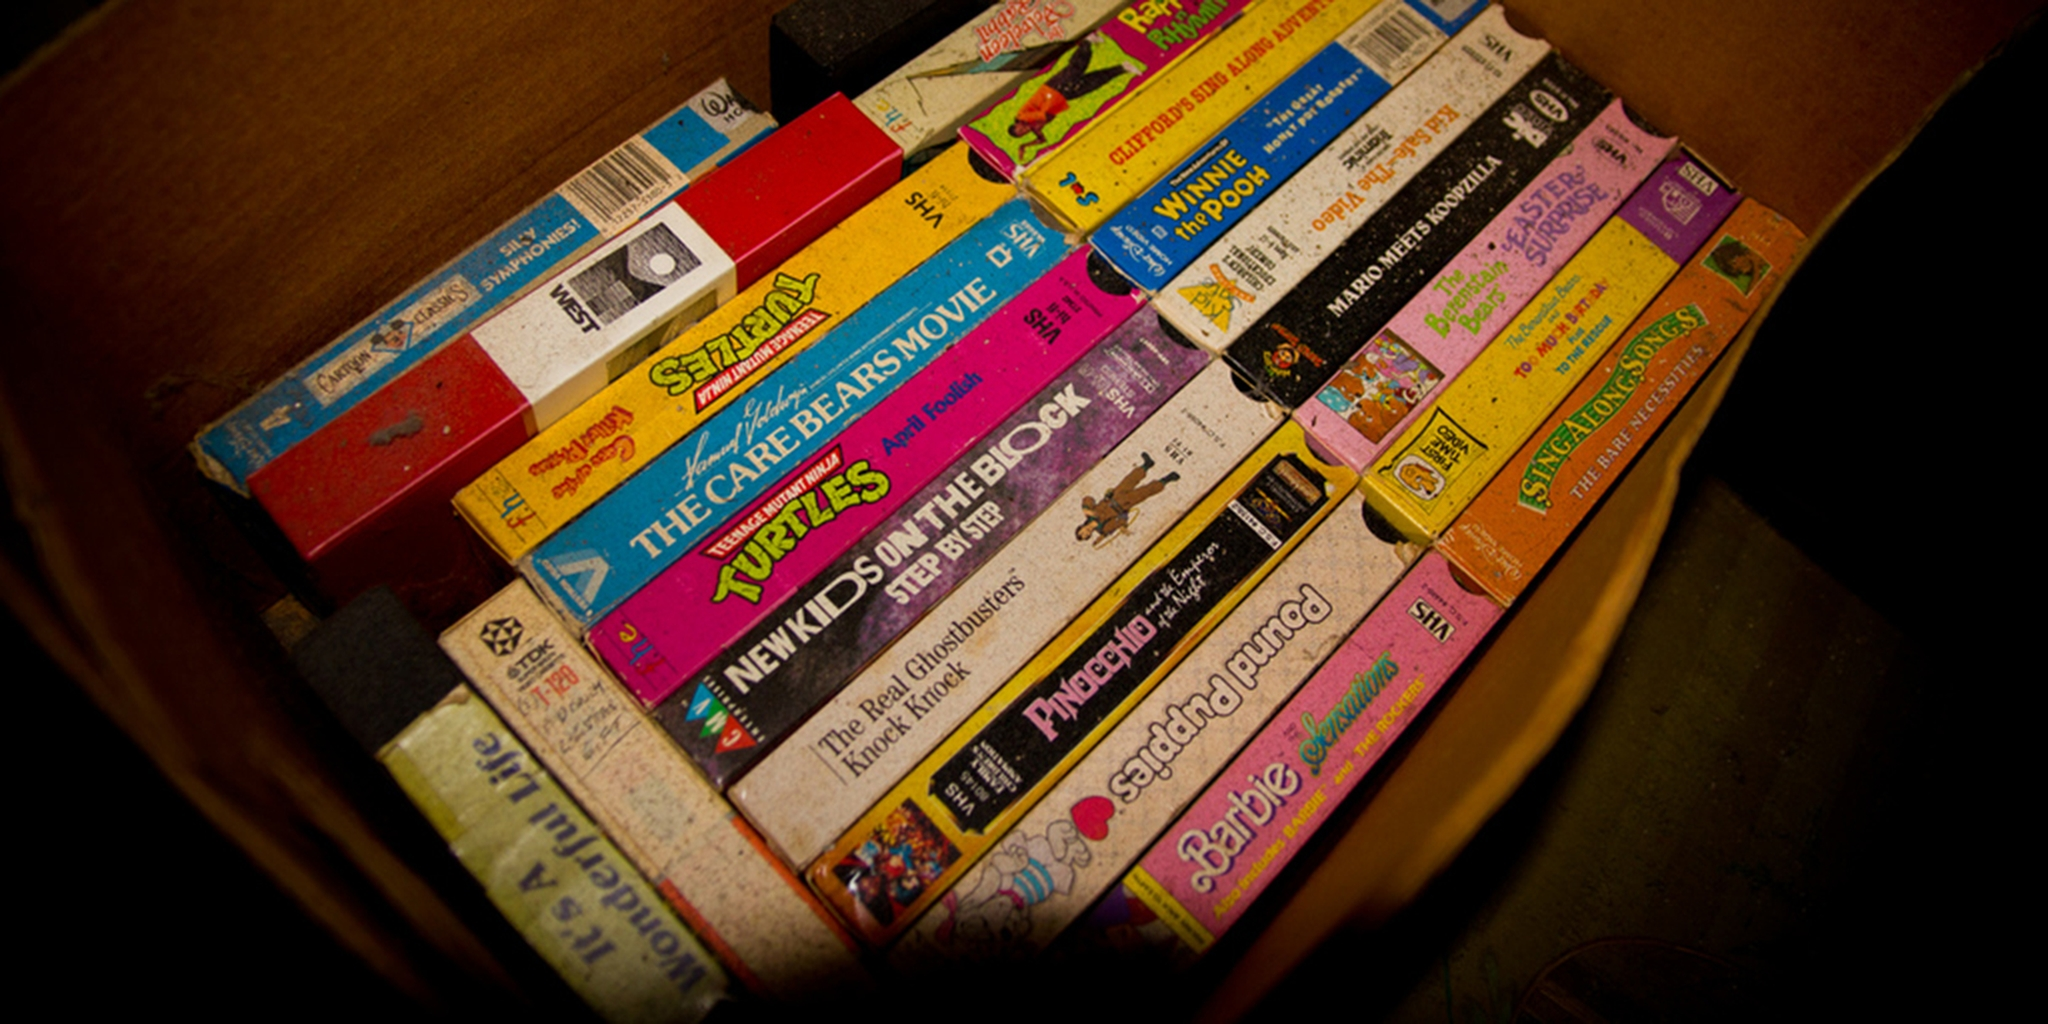 90s vhs video tapes of children's movies in a cardboard box